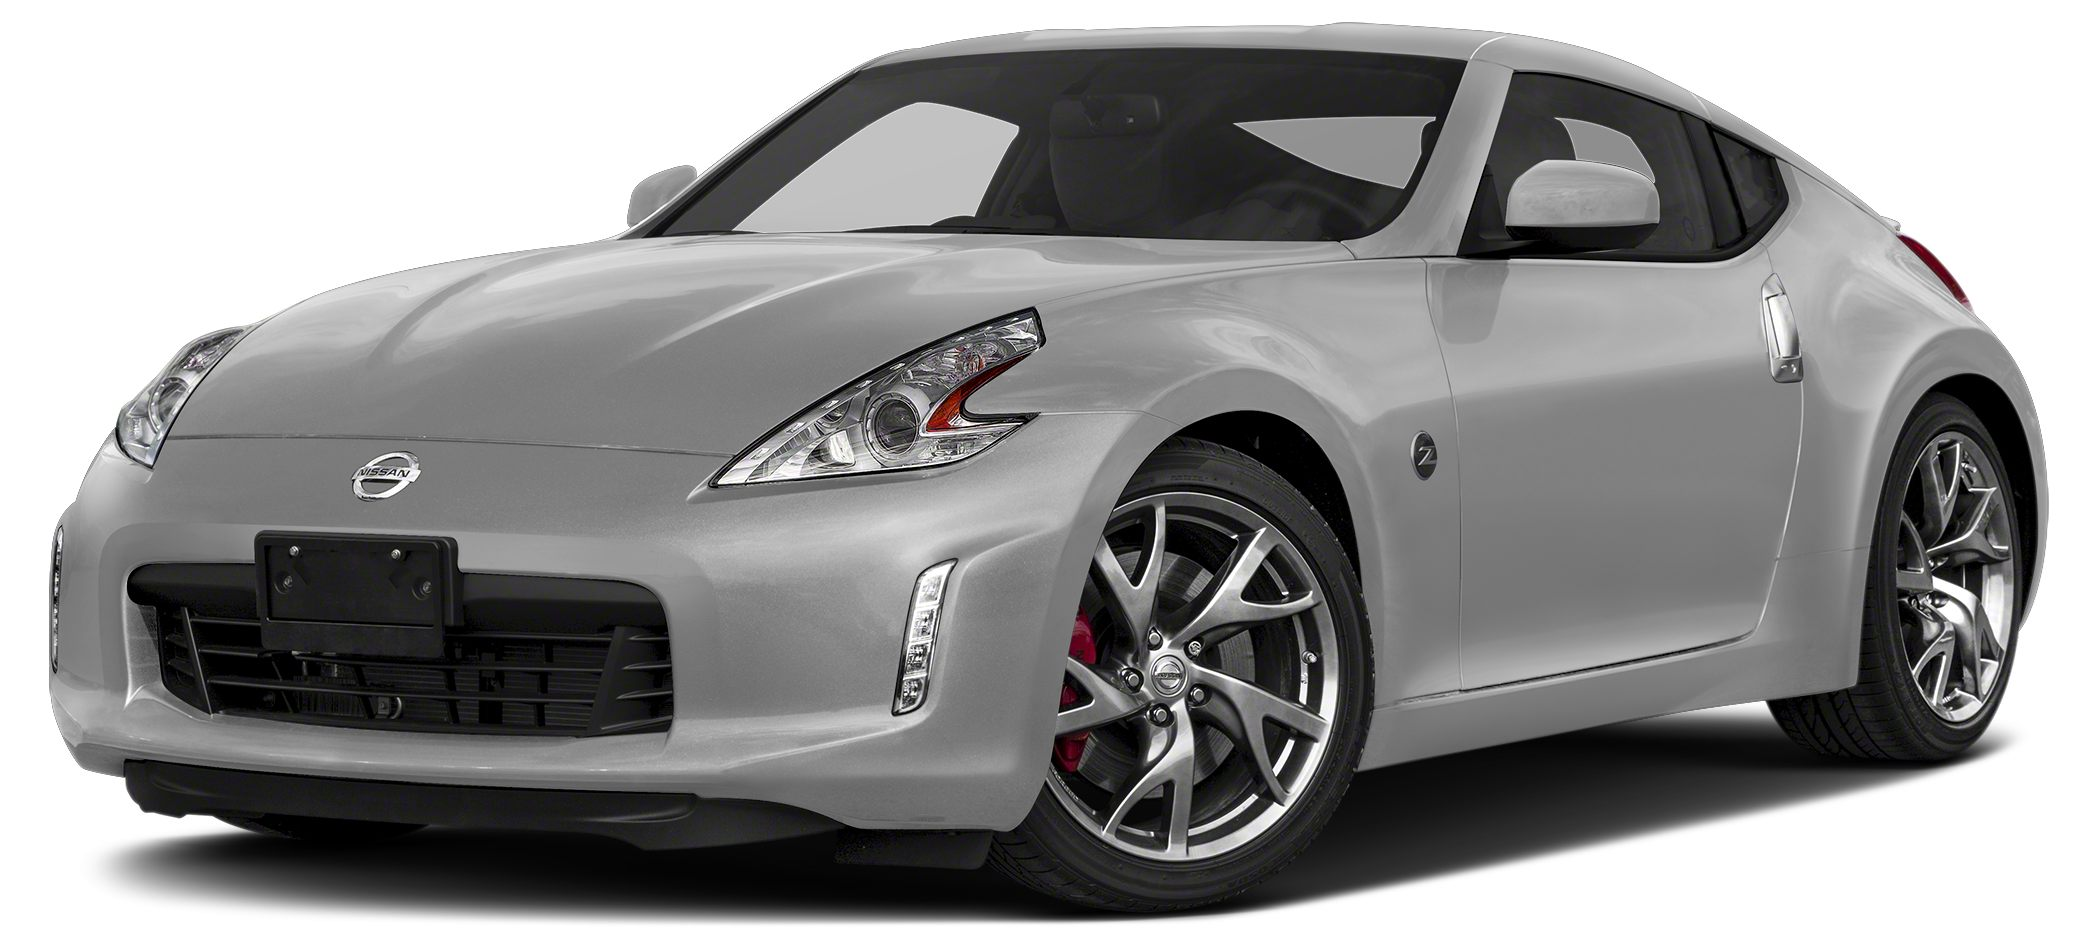 2017 Nissan 370Z Sport Tech This 2017 Nissan 370Z Sport Tech will sell fast Priced to sell at 3